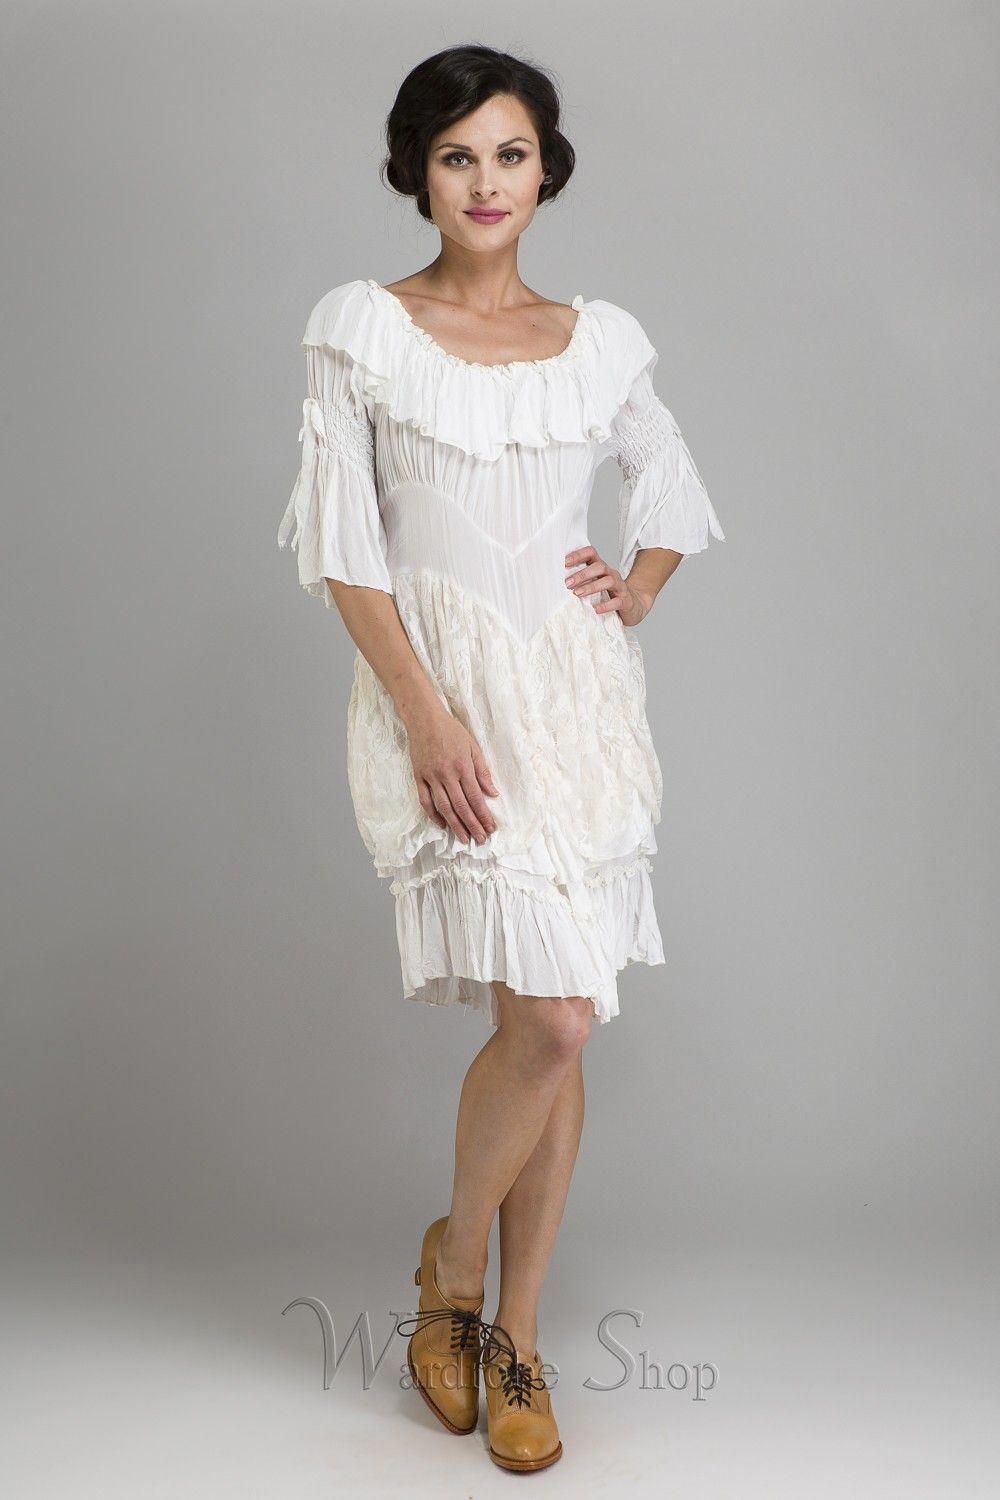 Cow Ruffled Western Wedding Medium Dress By Marrika Nakk Inspired Dresses Gowns Outfit